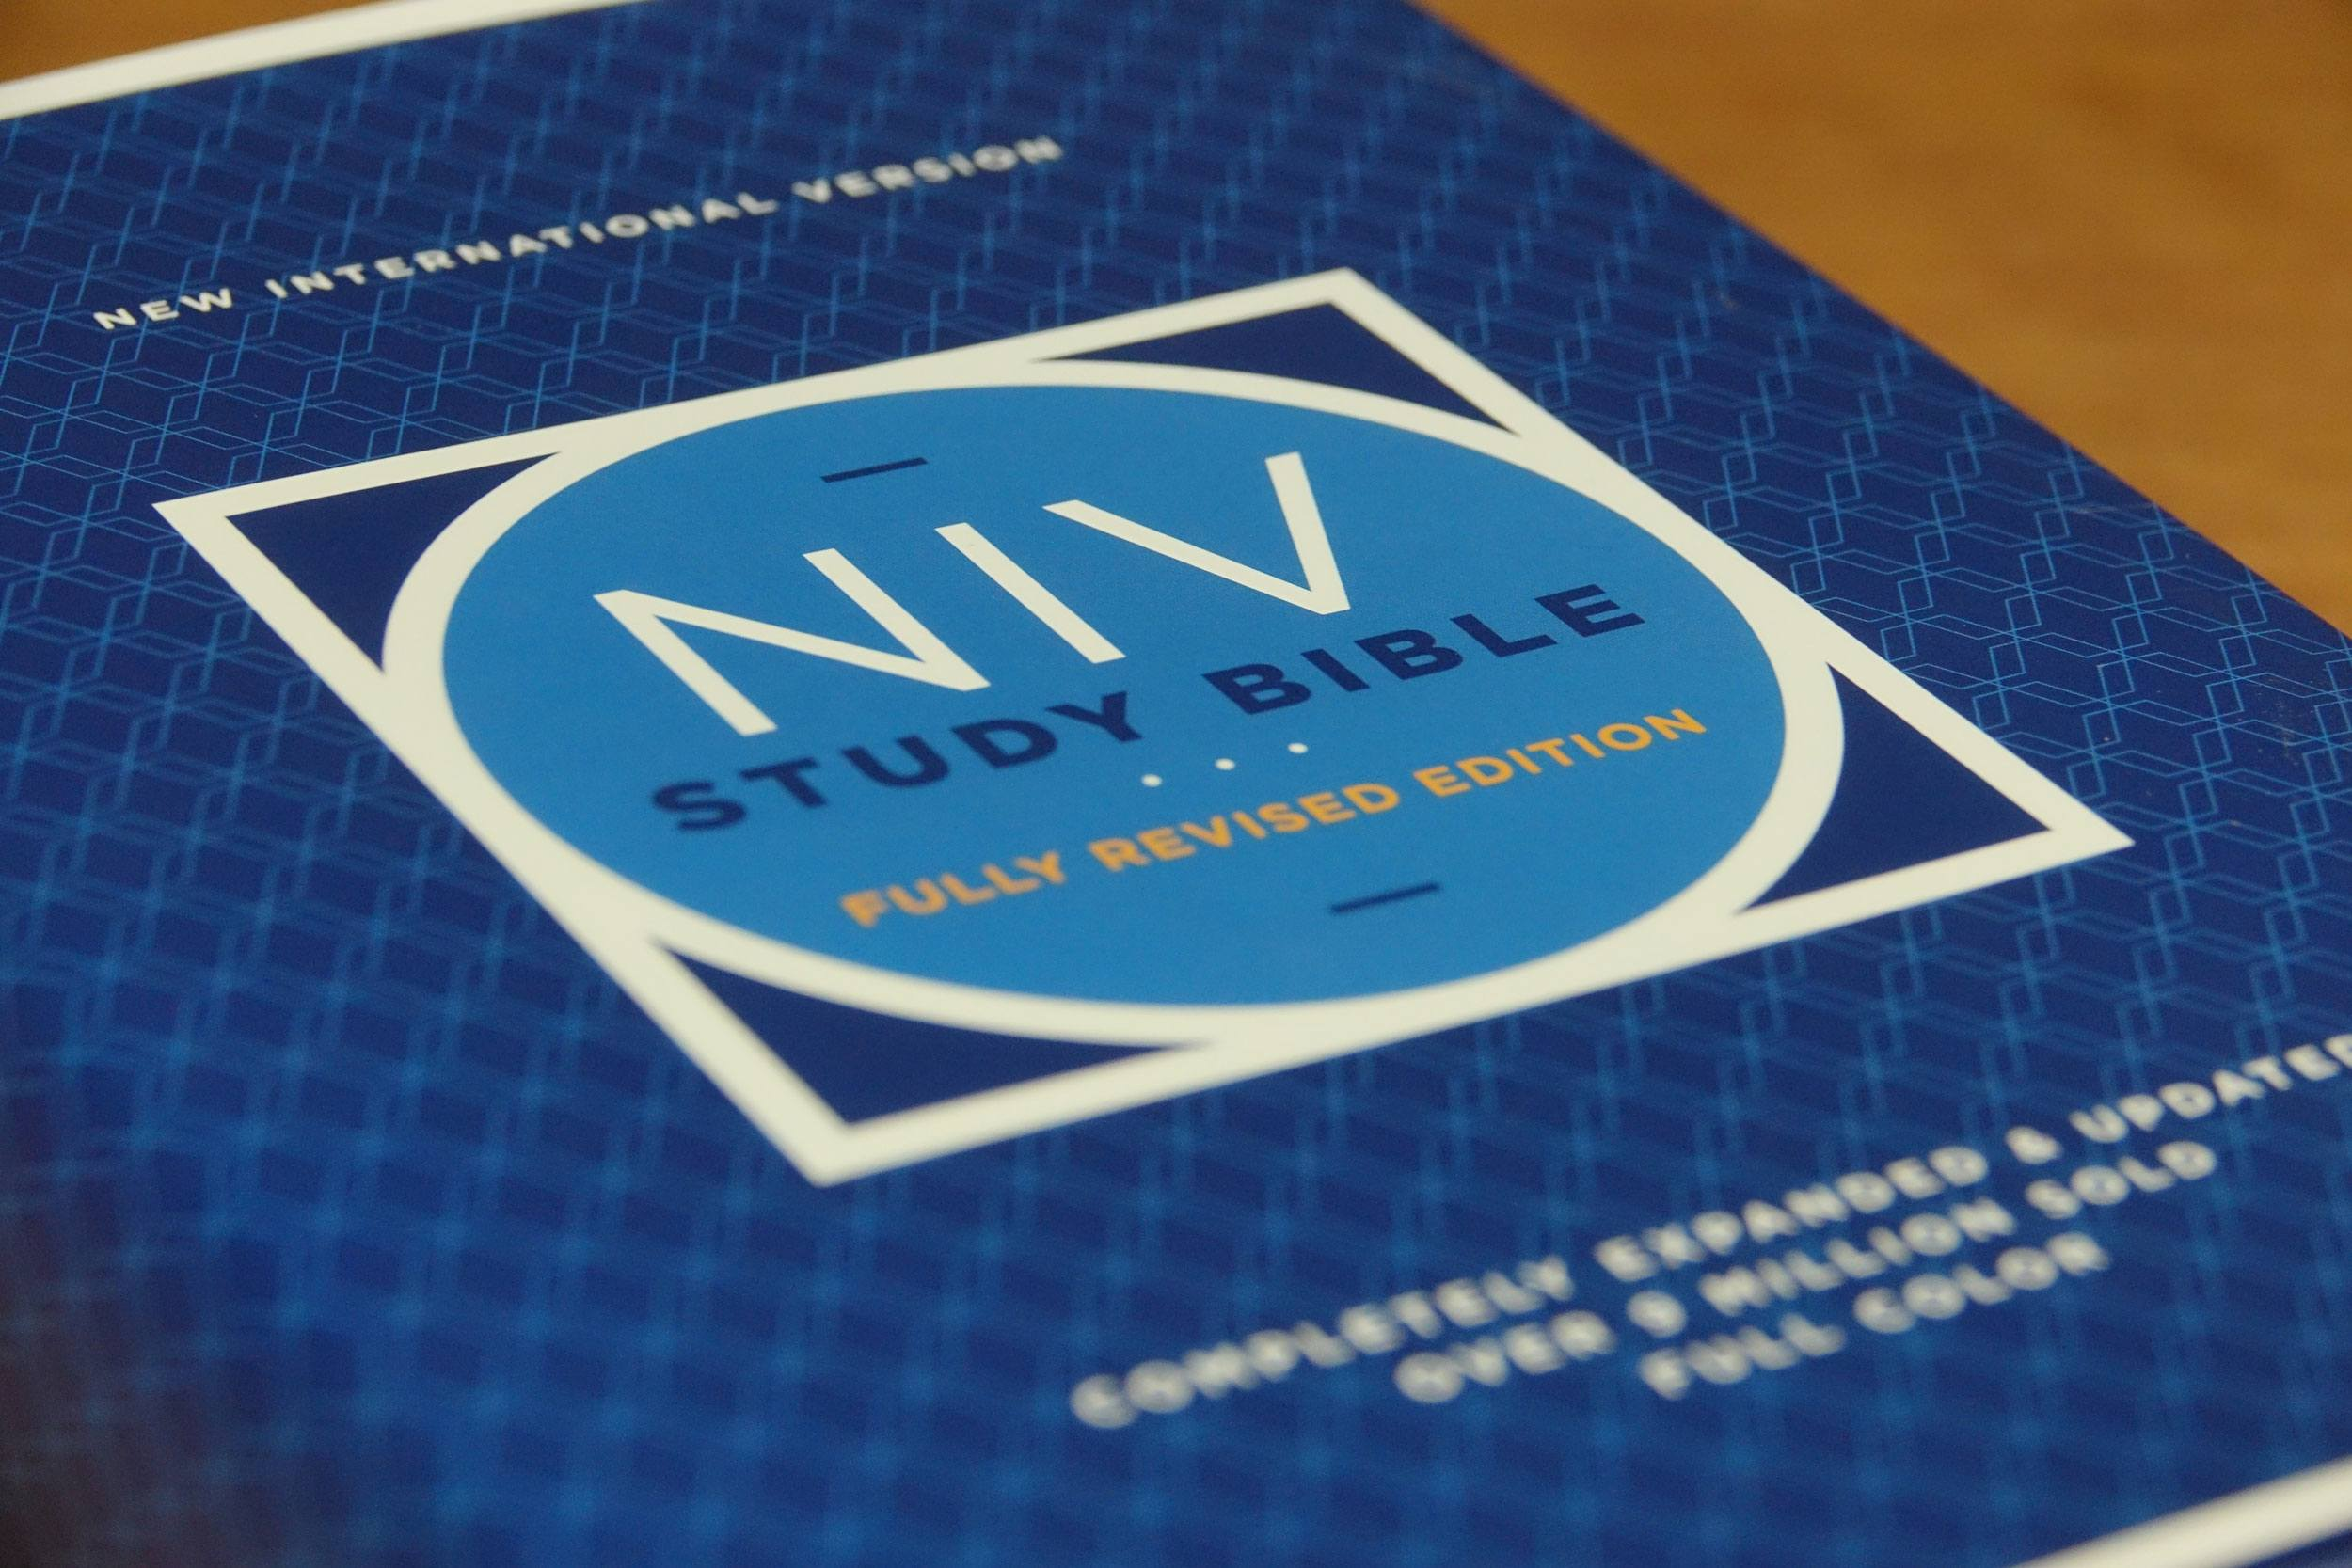 NIV Study Bible Fully Revised Edition cover